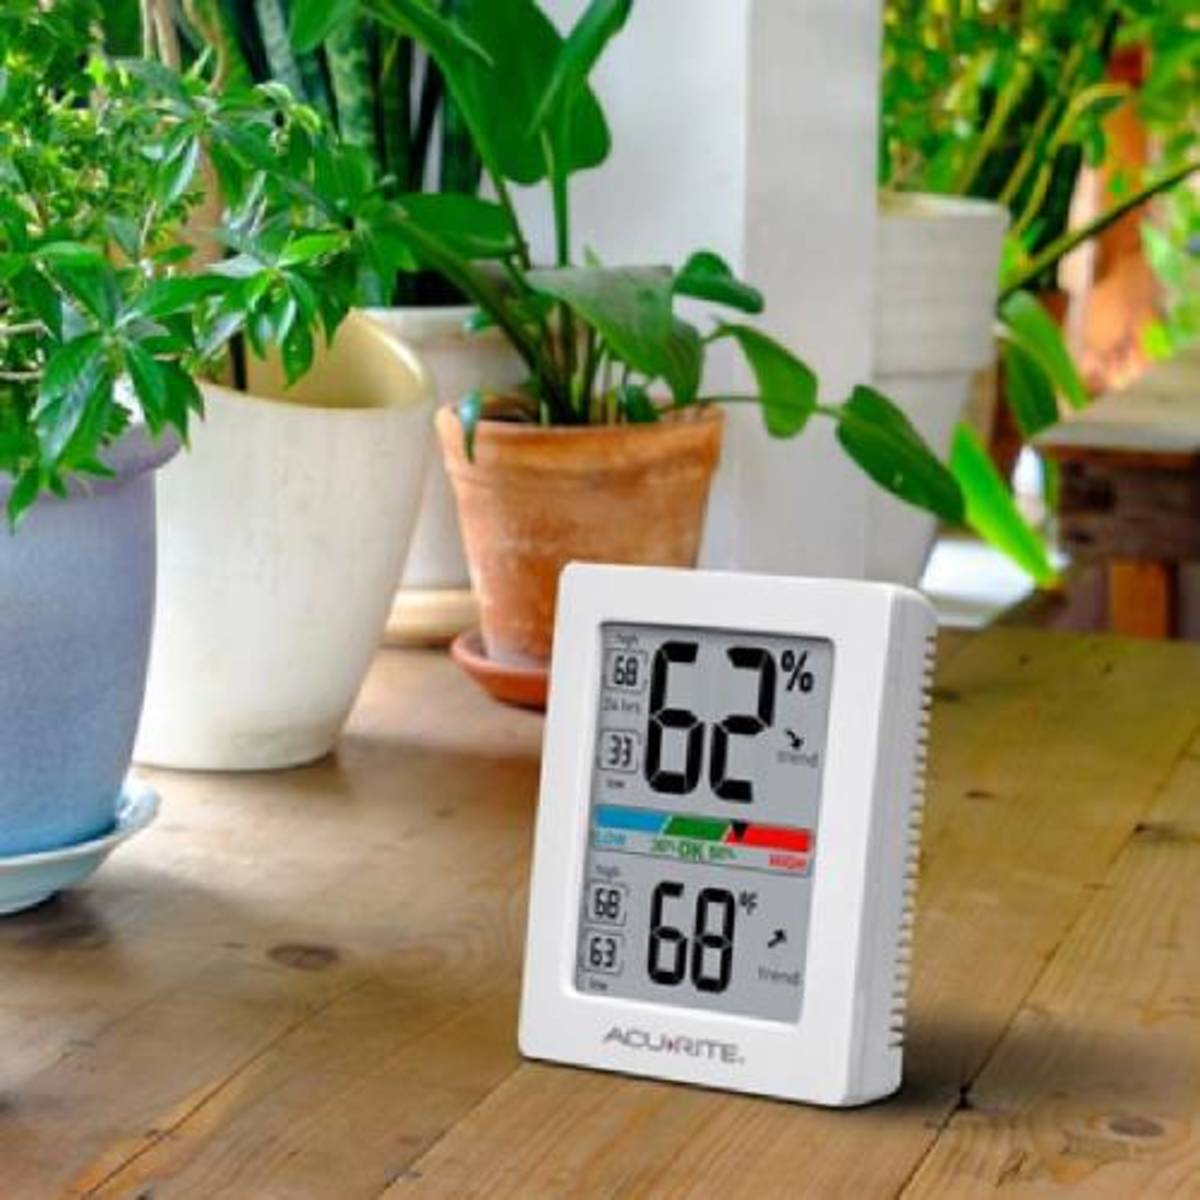 Hygrometers display the exact humidity in the room so you can determine how much to water or mist your plants.